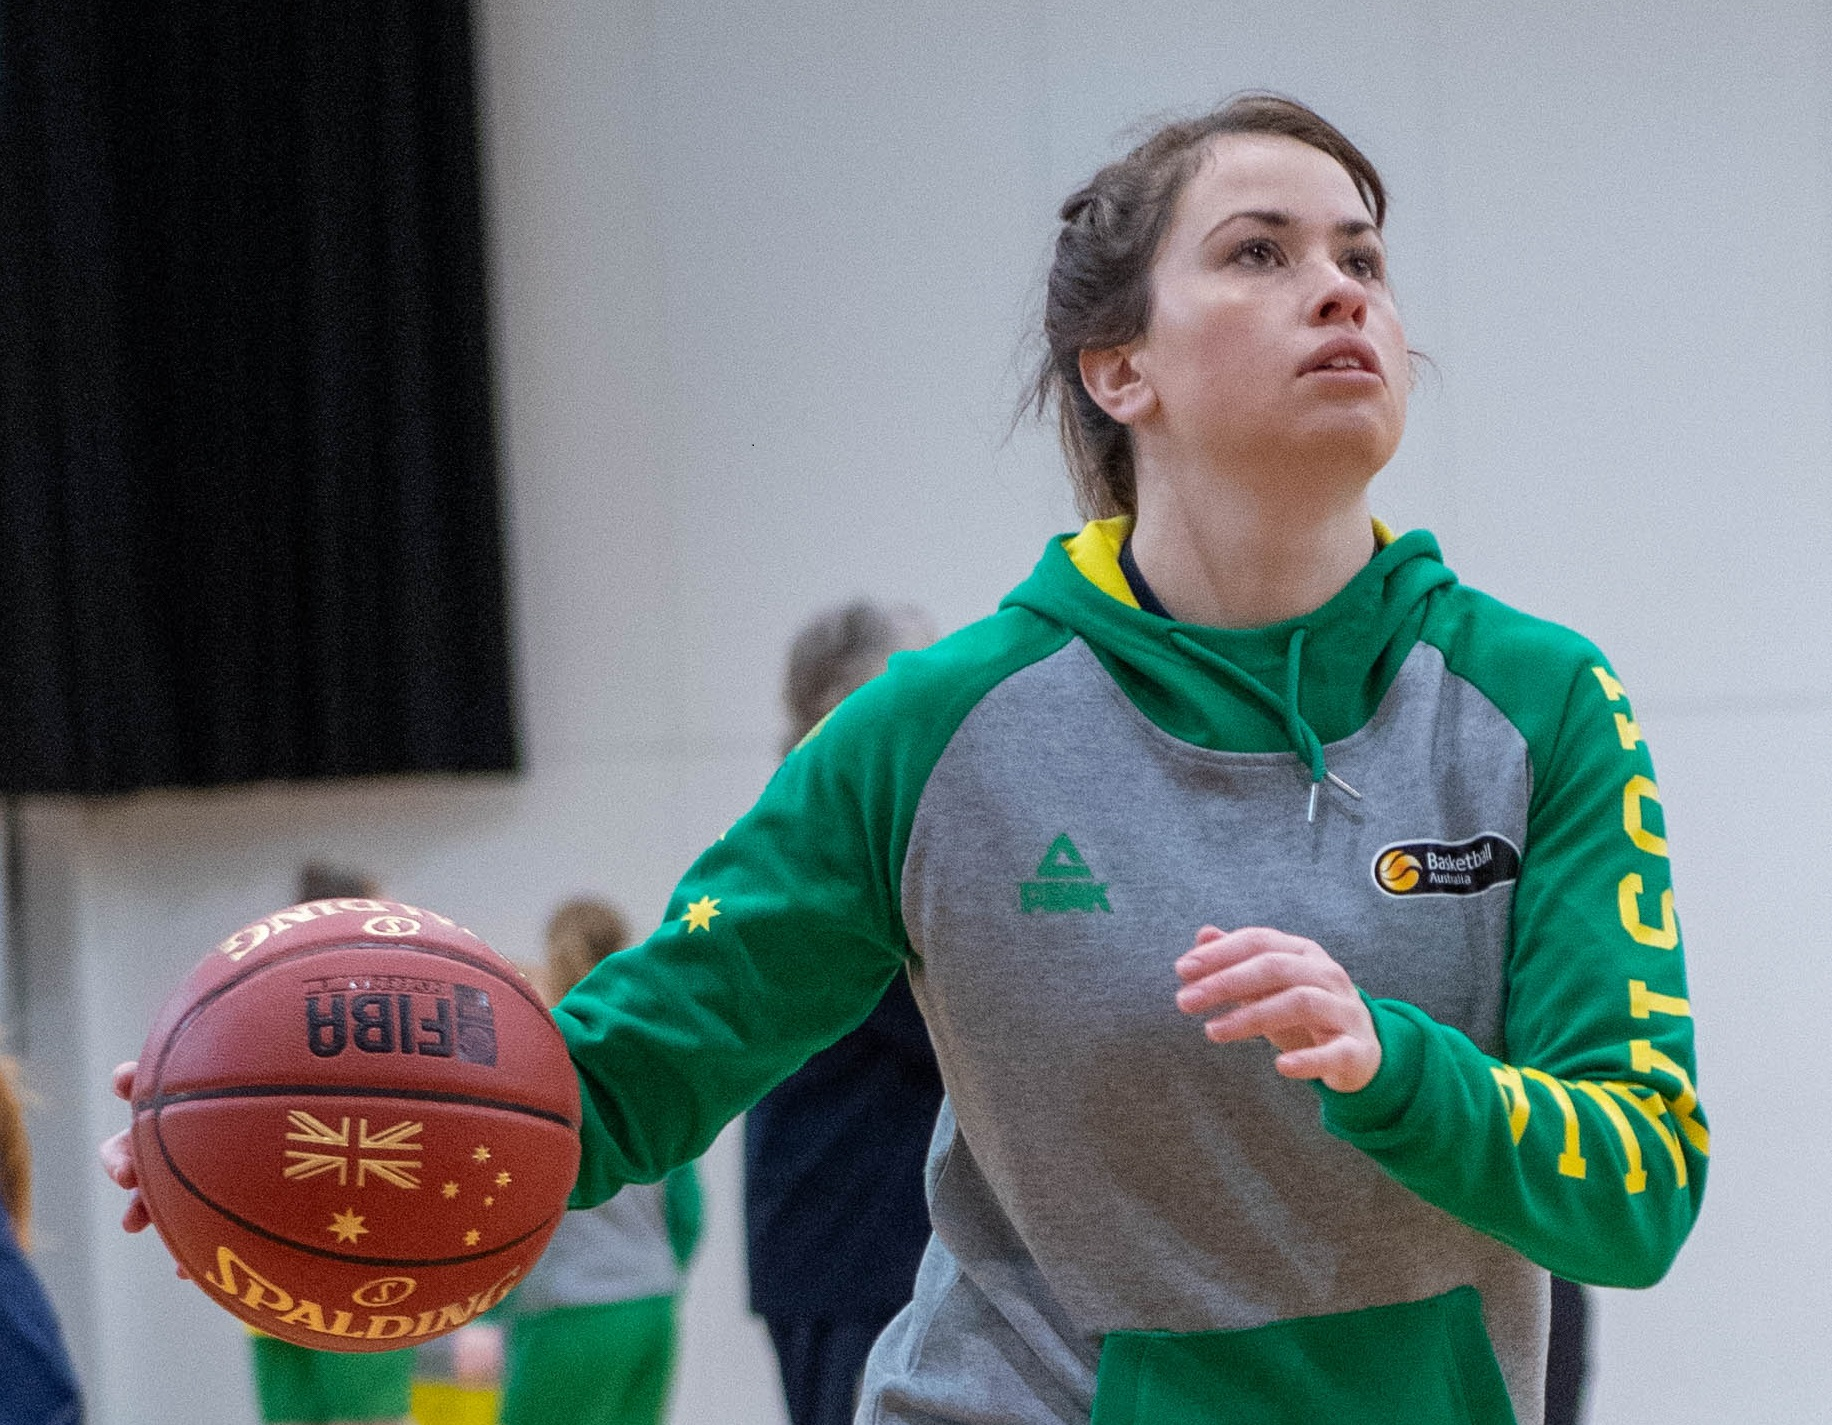 A female basketball player is pictured during practice, looking towards the net whilst holding a basketball in her hand